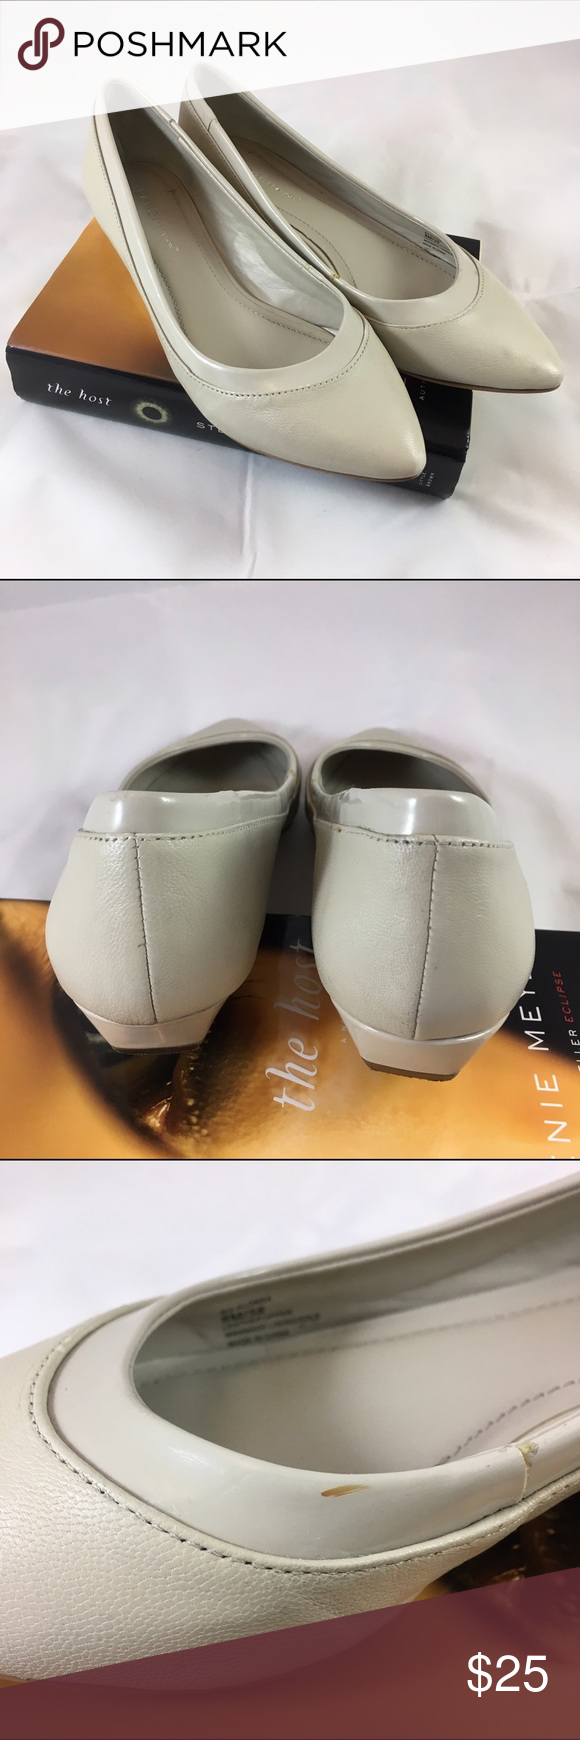 BCBG Generation size 8 beige short wedge BCBG Generation, style called Alonsa, 1/4 inch short wedge, size 8, leather in light beige/cream colorOFFERS WELCOME! BCBGeneration Shoes Flats & Loafers